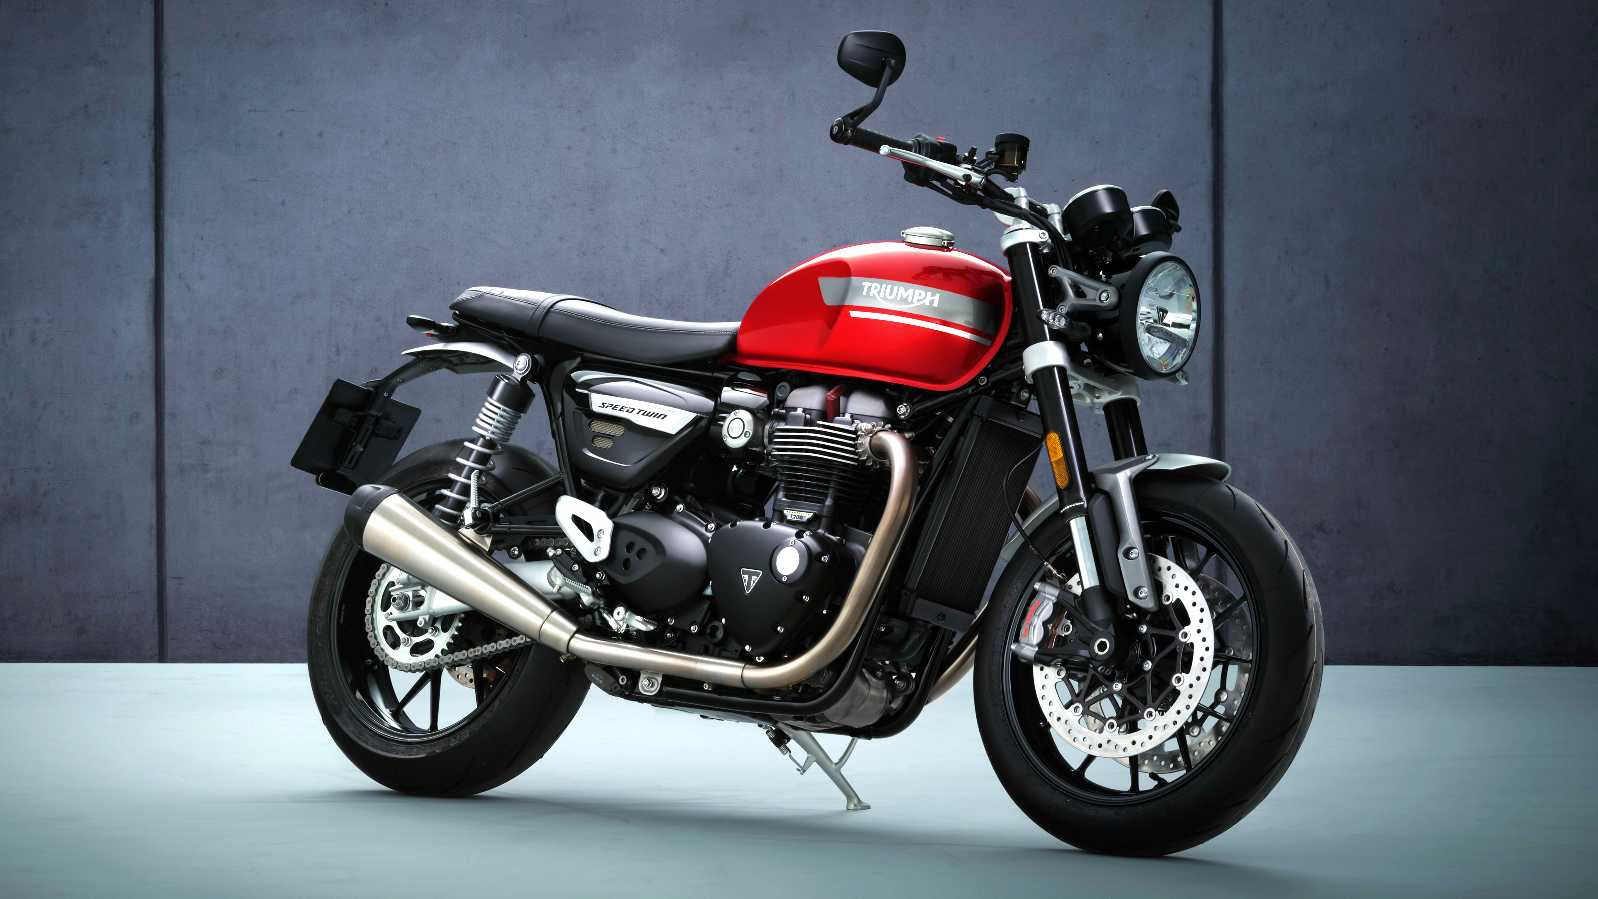 The 2021 Triumph Speed Twin will be available in three colours, including the 'Red Hopper' scheme shown here. Image: Triumph Motorcycles